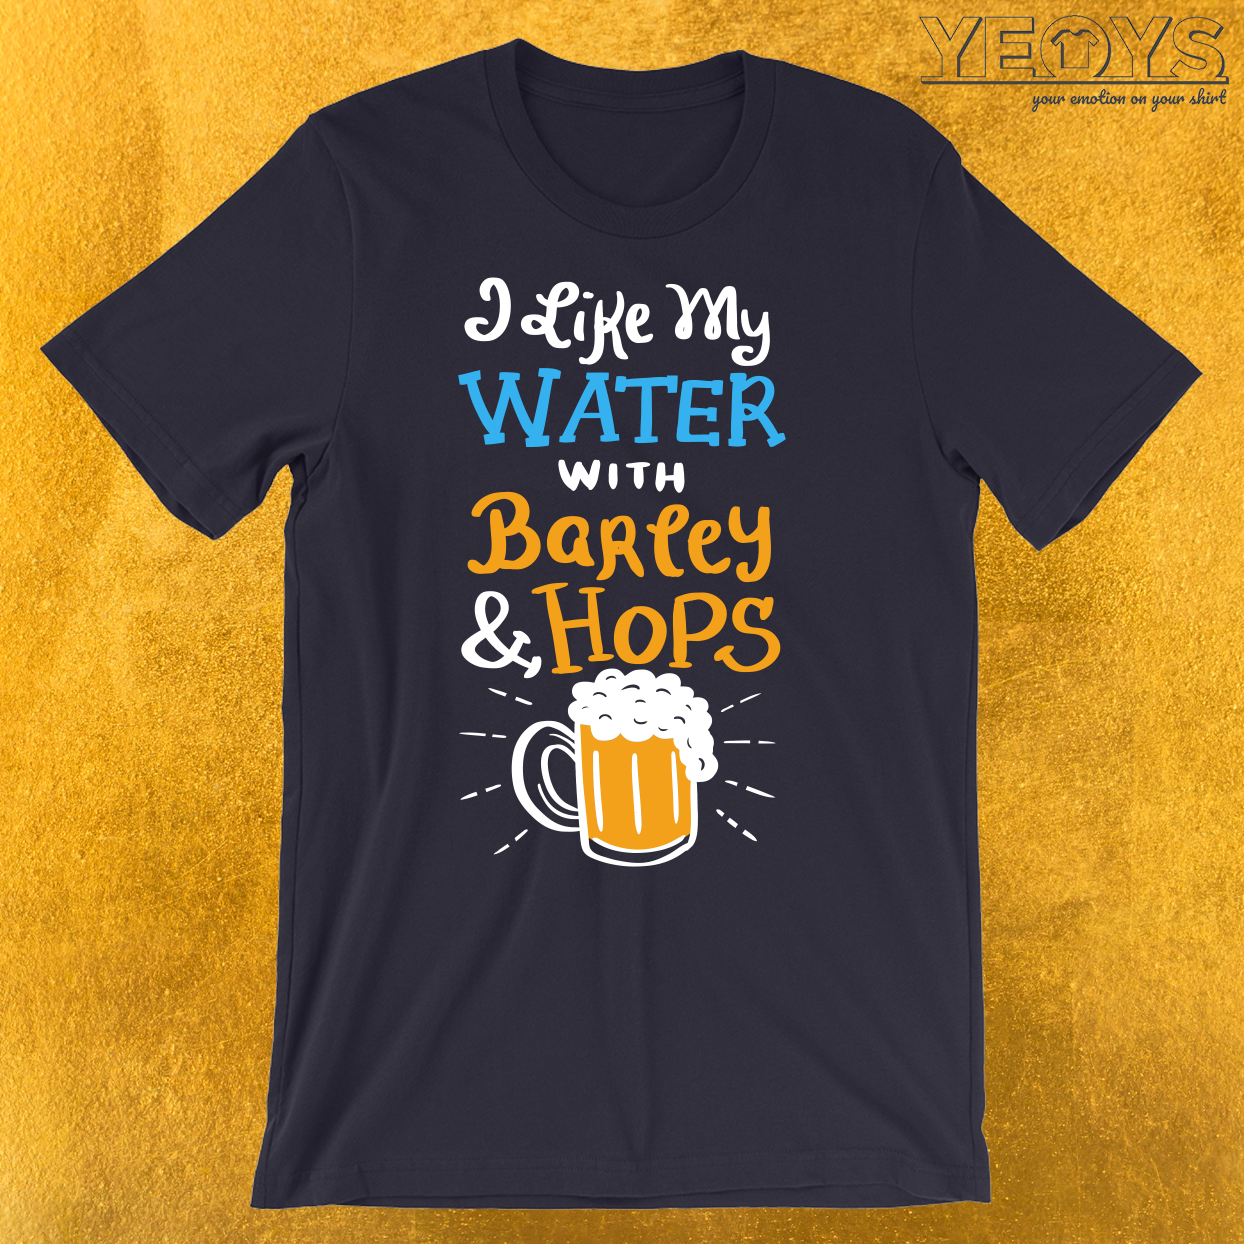 I Like My Water with Barley & Hops T-Shirt